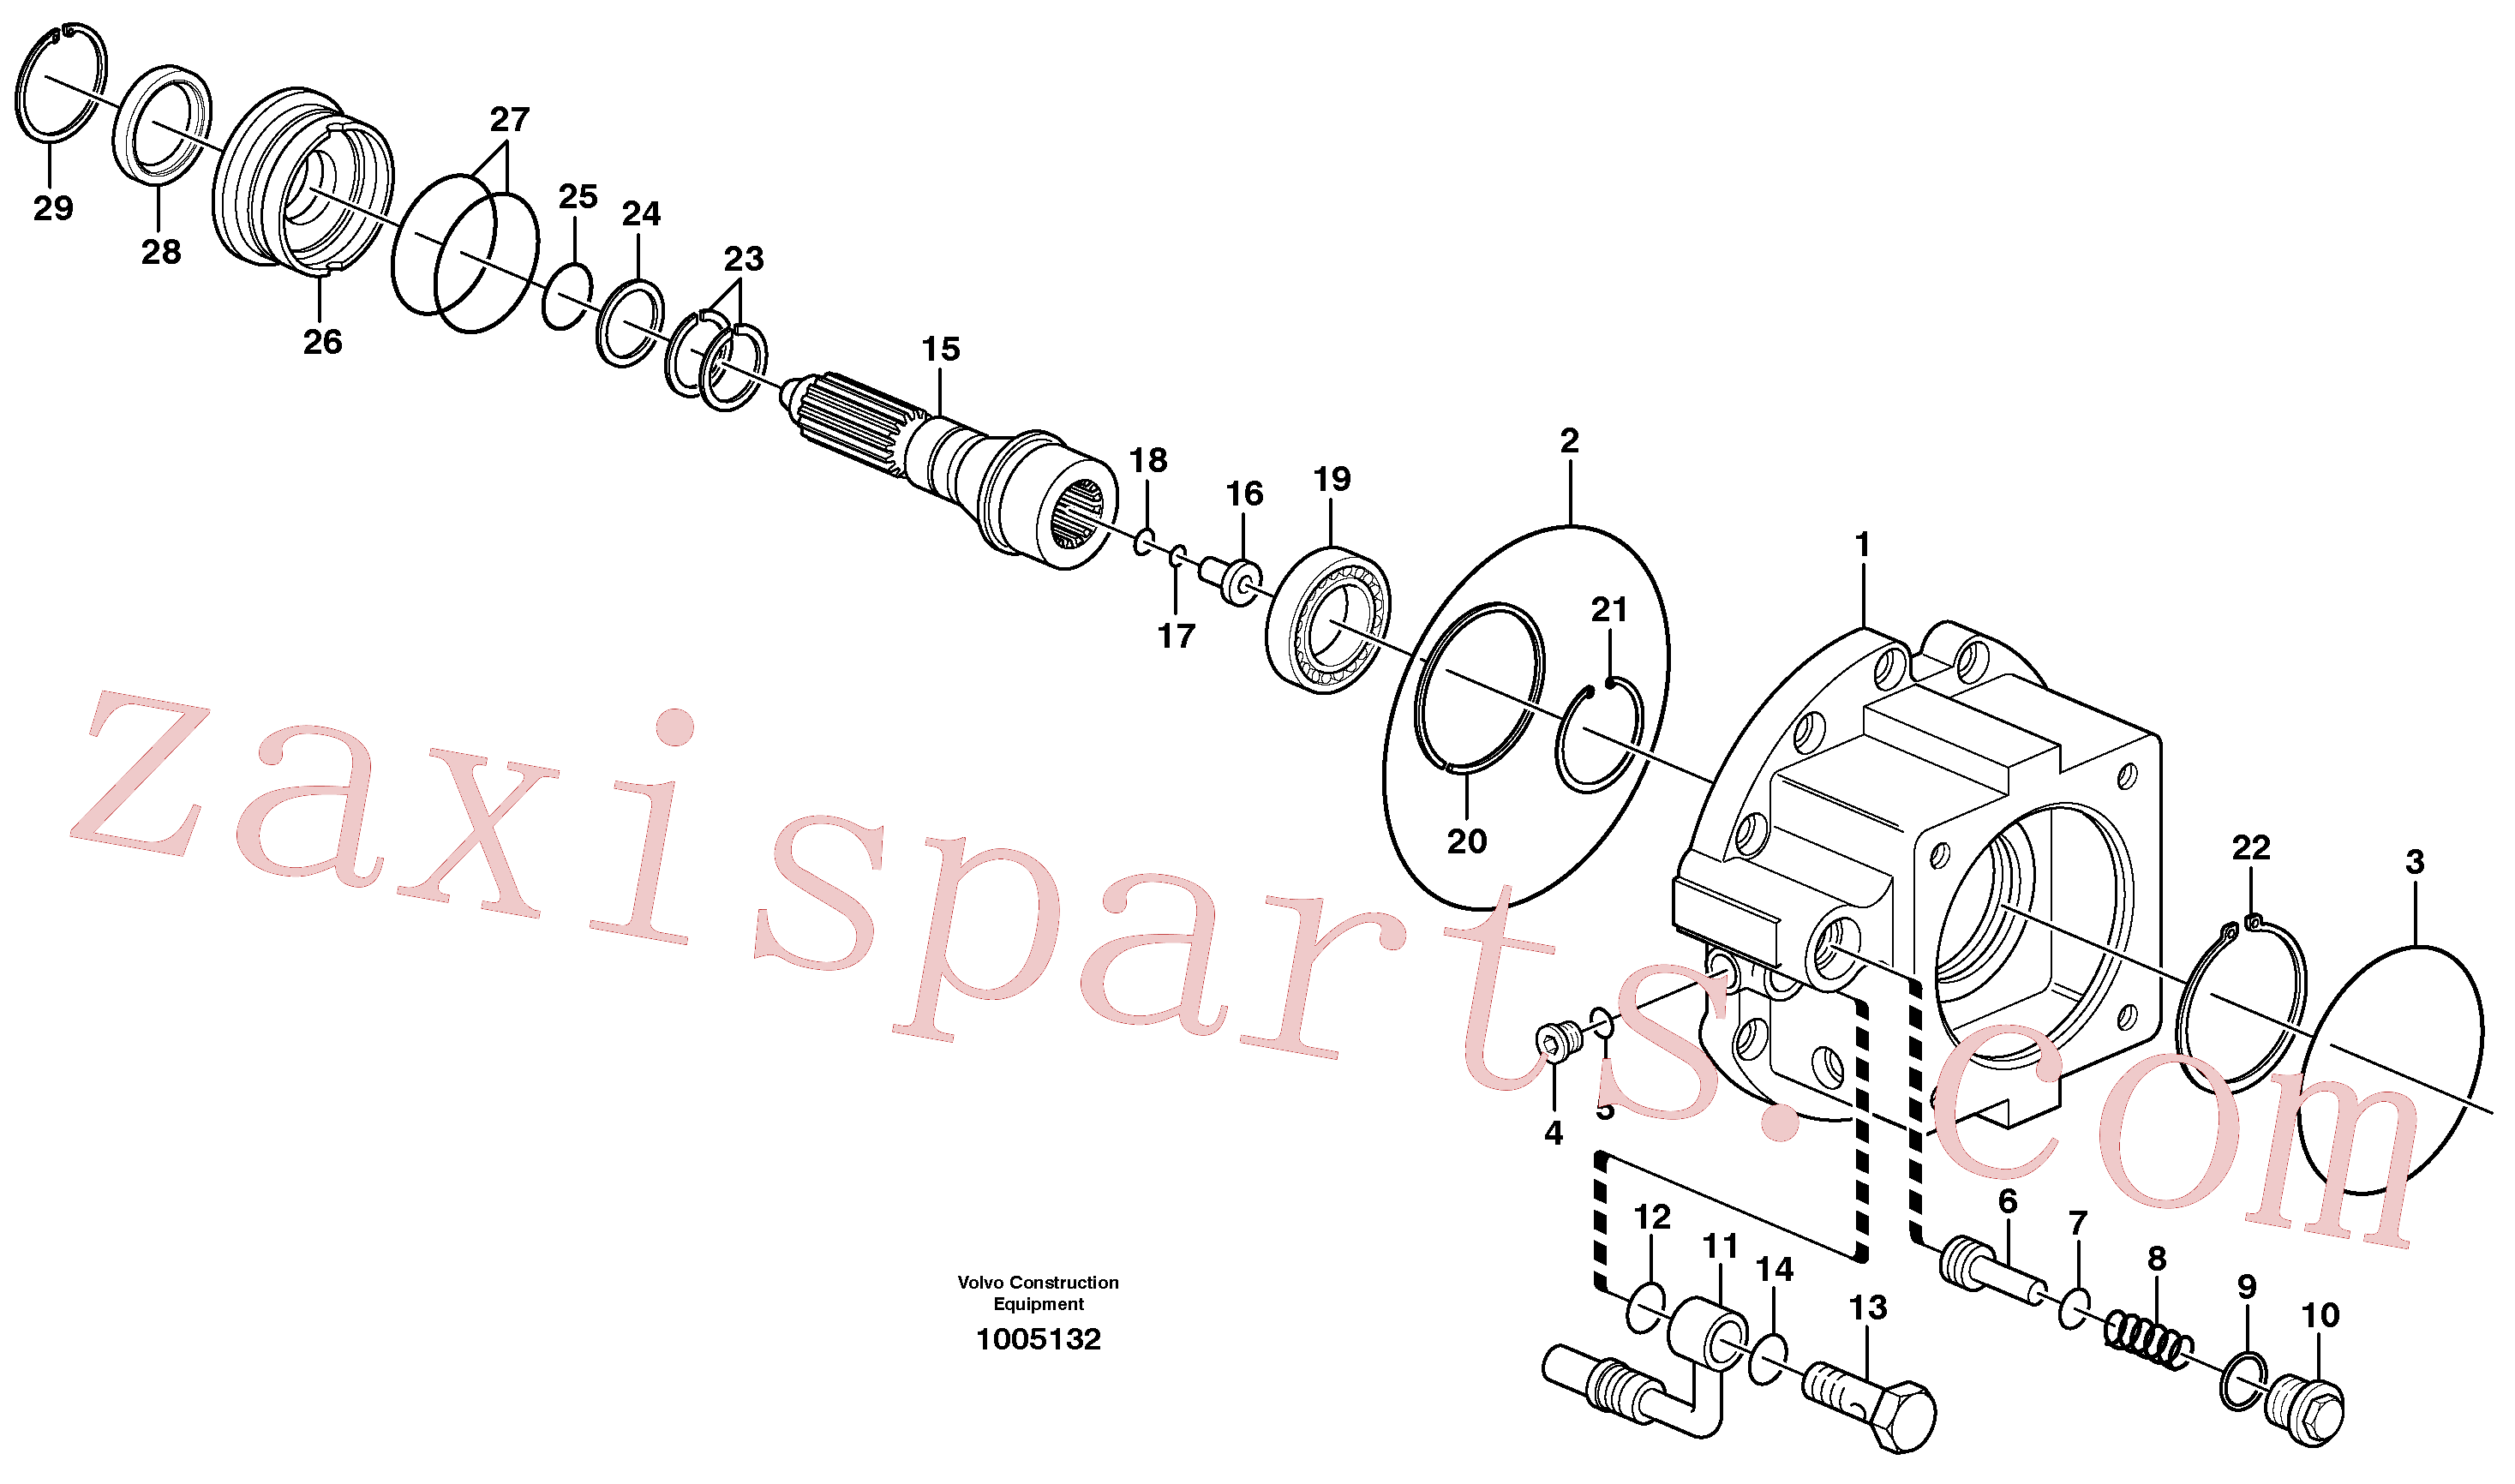 SA8220-02510 for Volvo Dropbox, Pump housing, Rear axle, Pump housing(1005132 assembly)